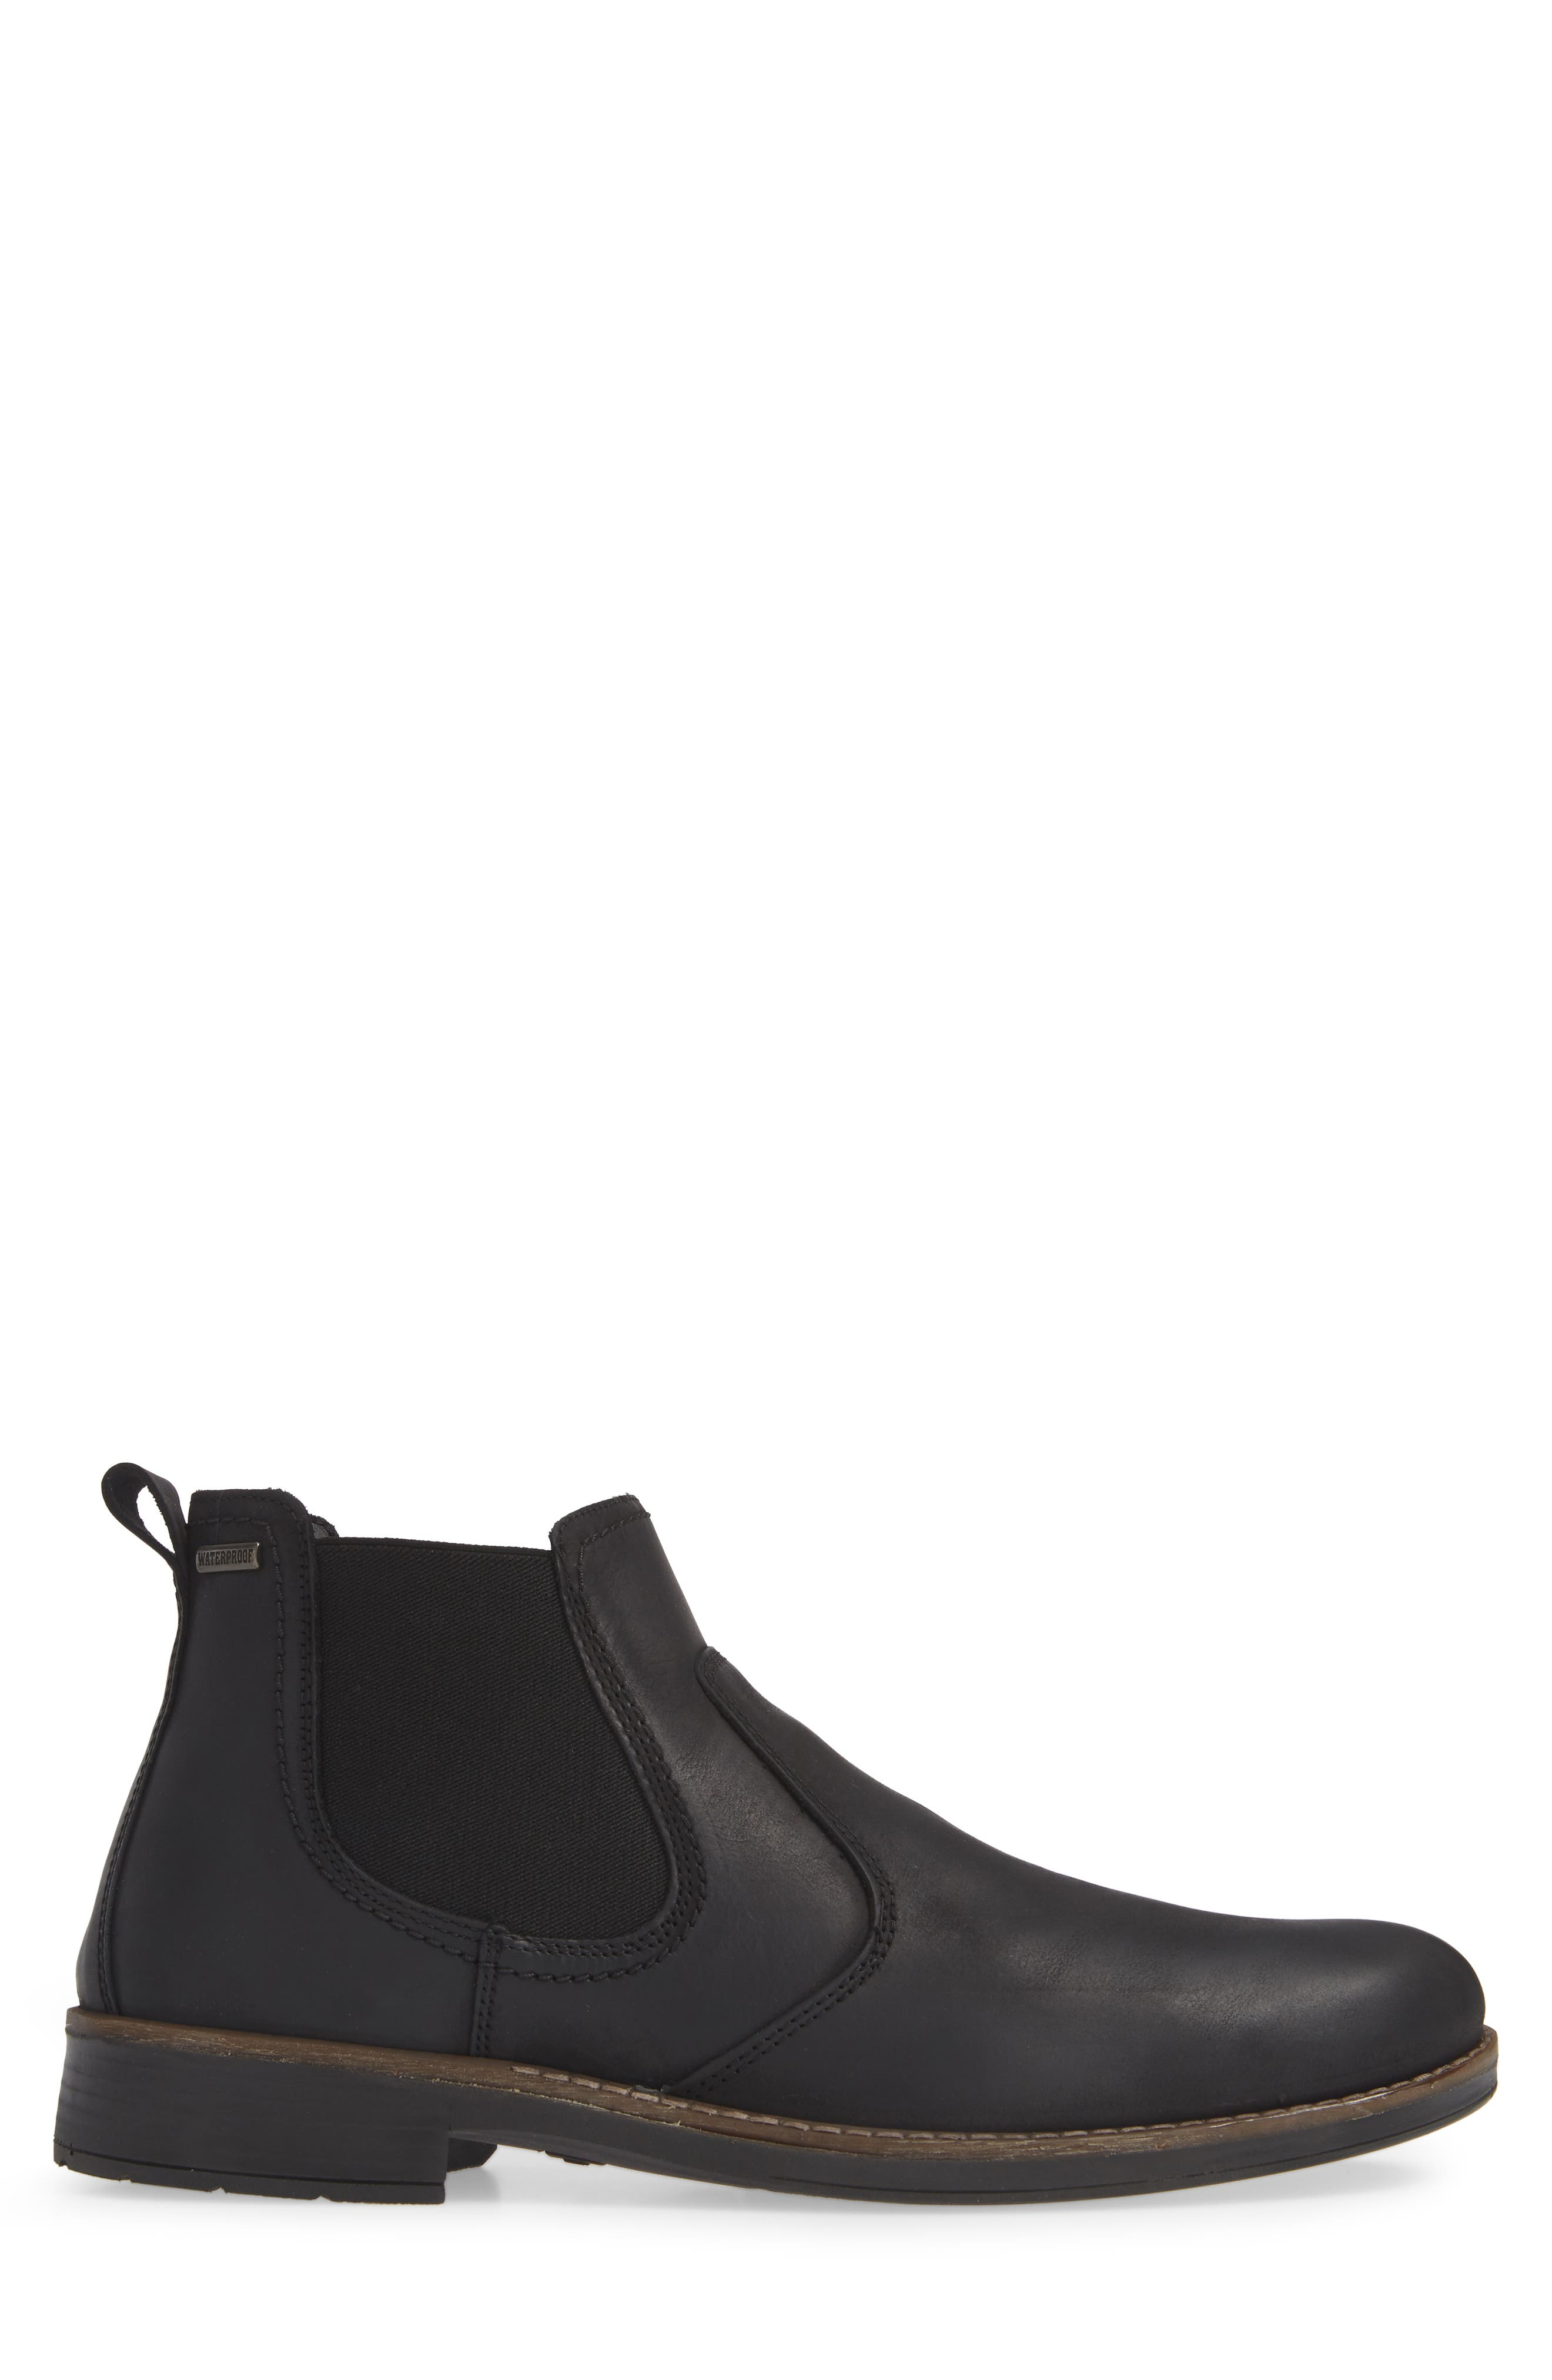 Maple Waterproof Chelsea Boot,                             Alternate thumbnail 3, color,                             BLACK LEATHER